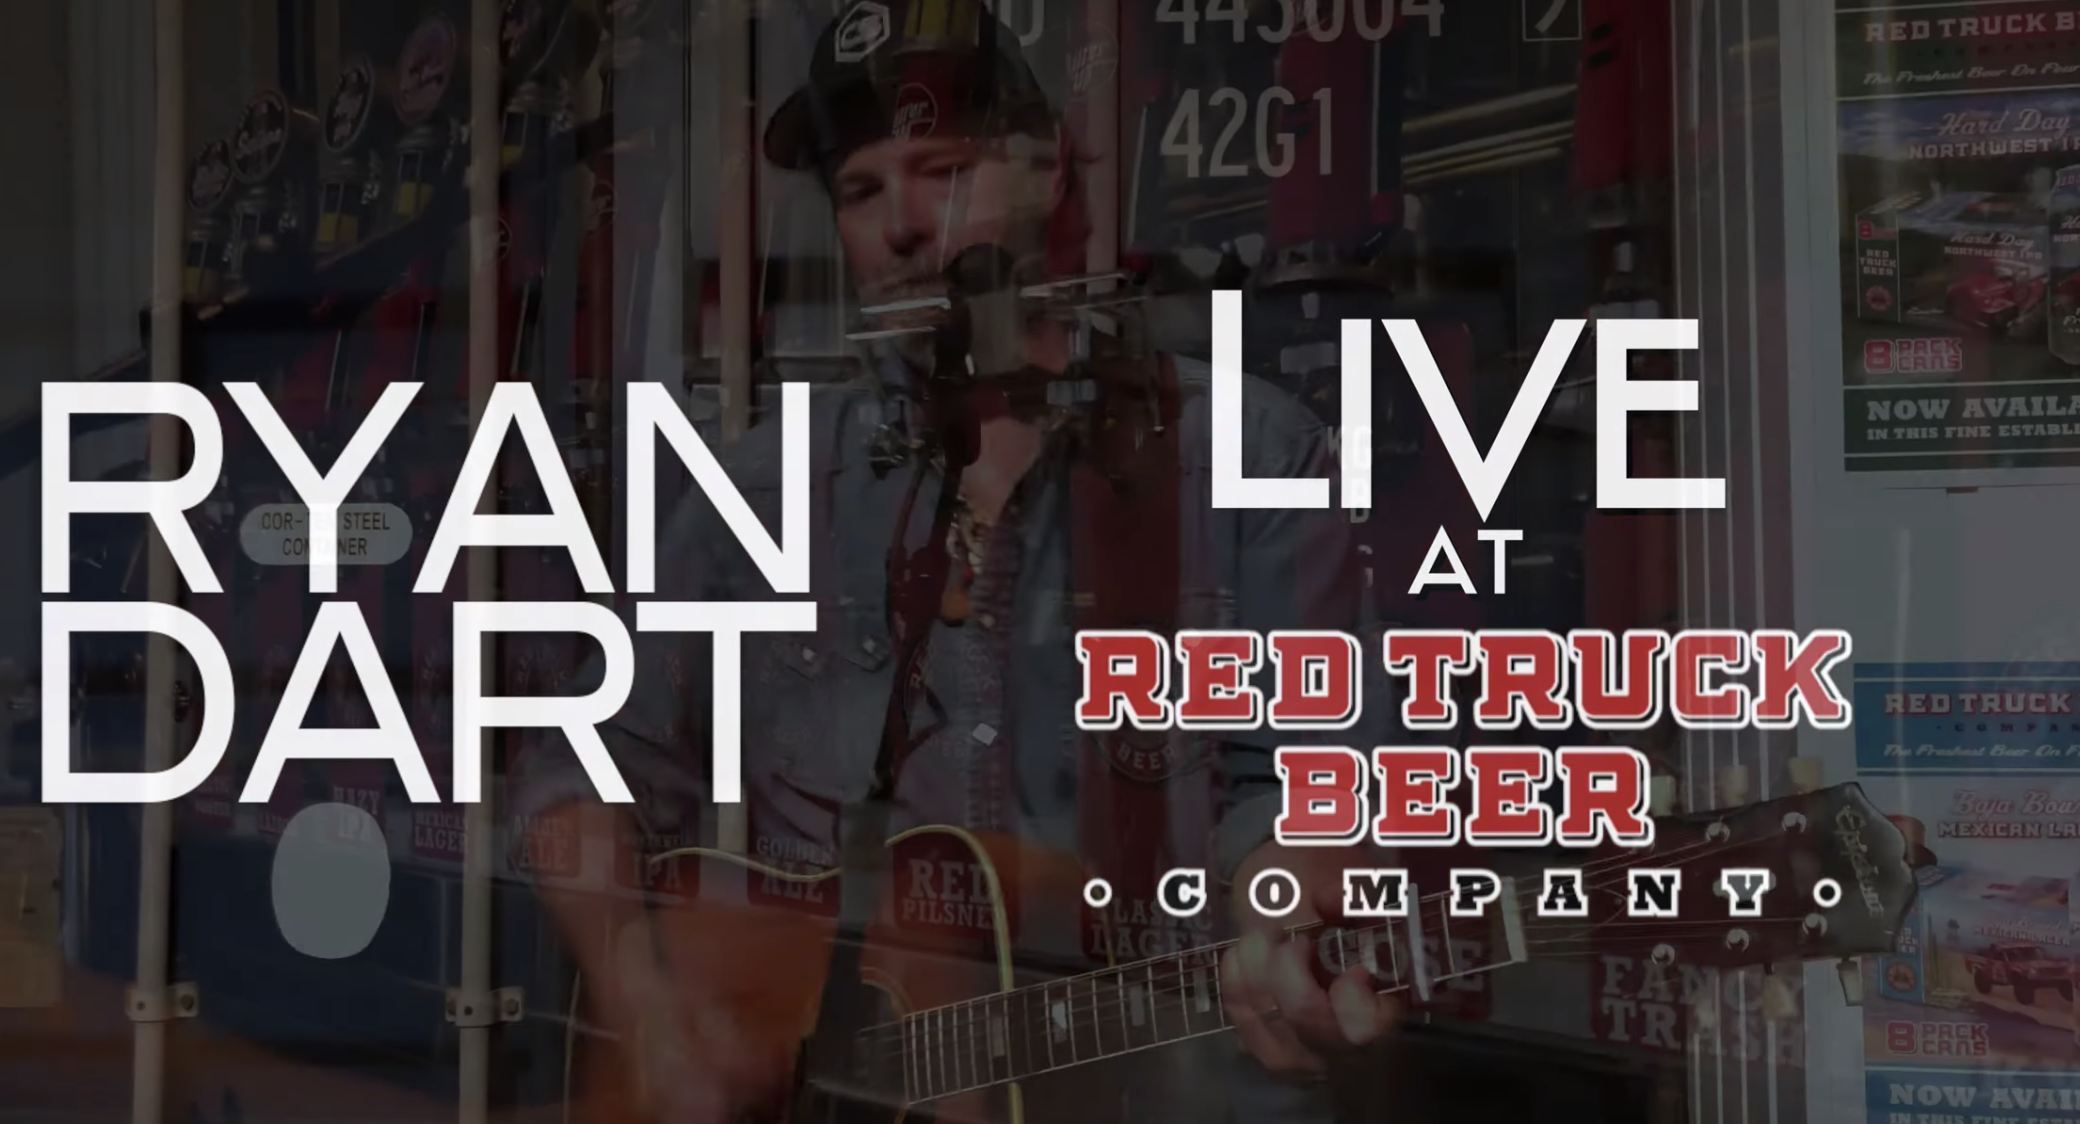 A Townes Van Zandt cover performed live by Ryan Dart and McKay Belk @ Red Truck Beer Co in Fort Collins, CO